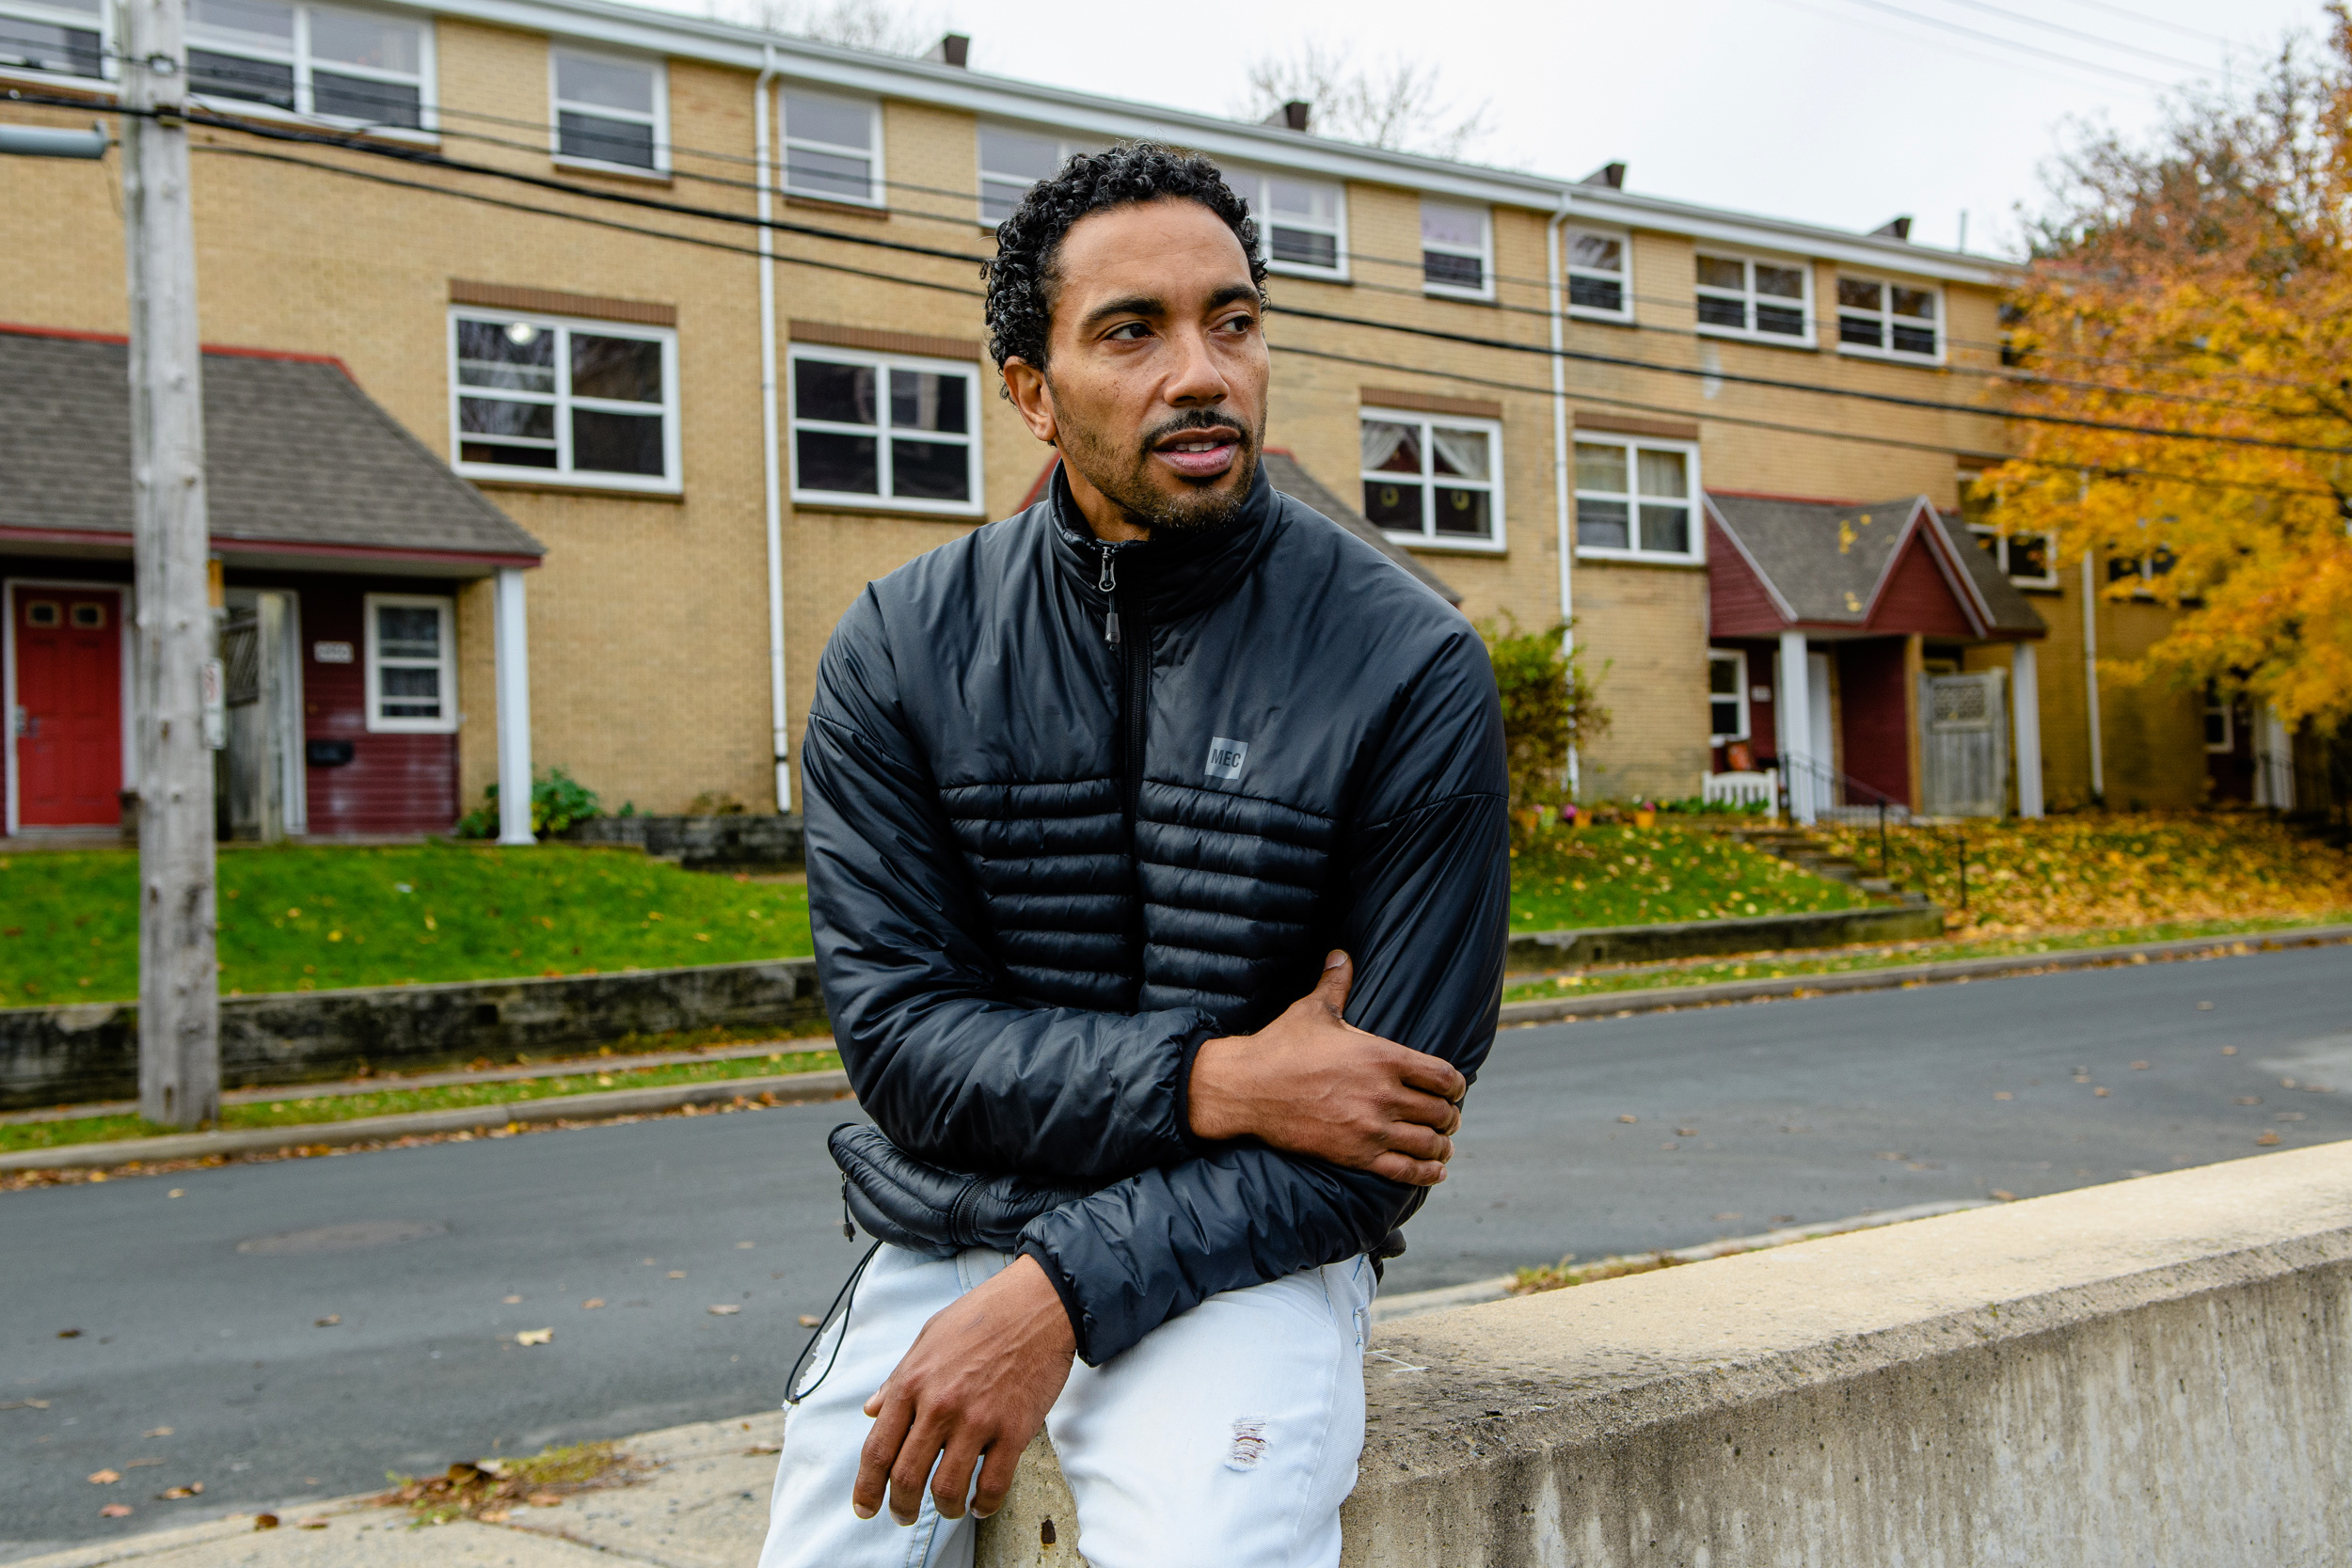 Rodney Small, Director of Common Good Solutions Inc. and One North End in front of Uniake Square, a public housing residential area in North End Halifax NS. (Aaron McKenzie Fraser)